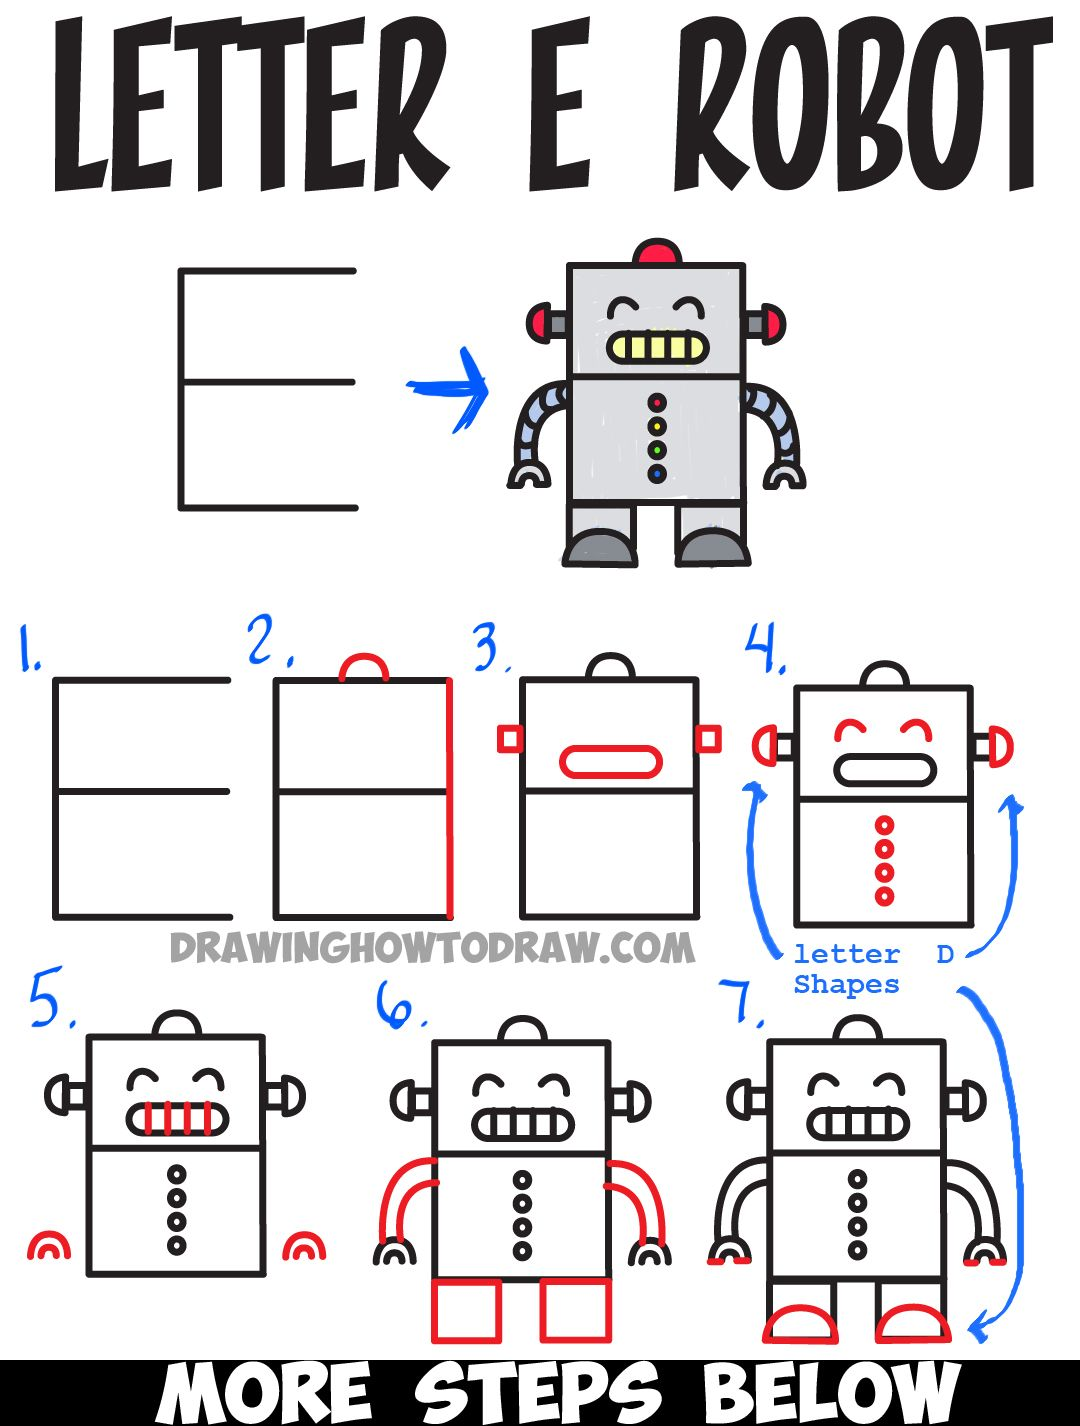 Letter How To Draw A Cartoon Robot From Uppercase Letter E Step By Step Drawing Lesson For Kids